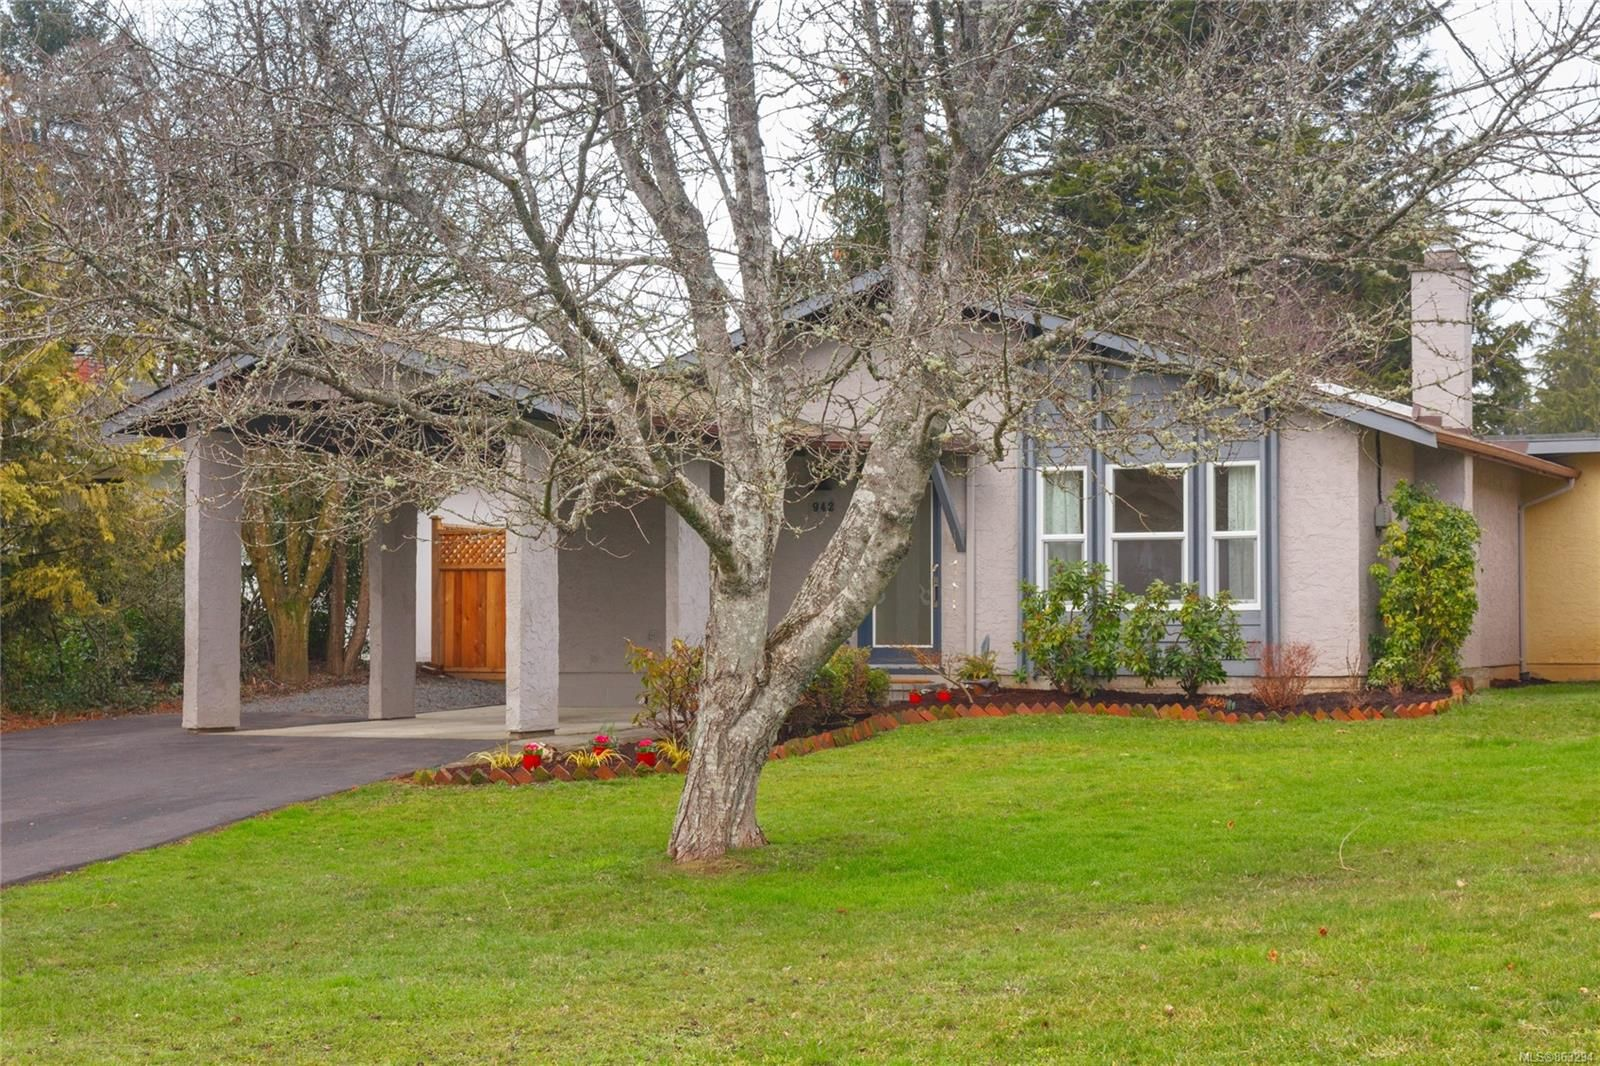 Main Photo: 942 Sluggett Rd in : CS Brentwood Bay Half Duplex for sale (Central Saanich)  : MLS®# 863294